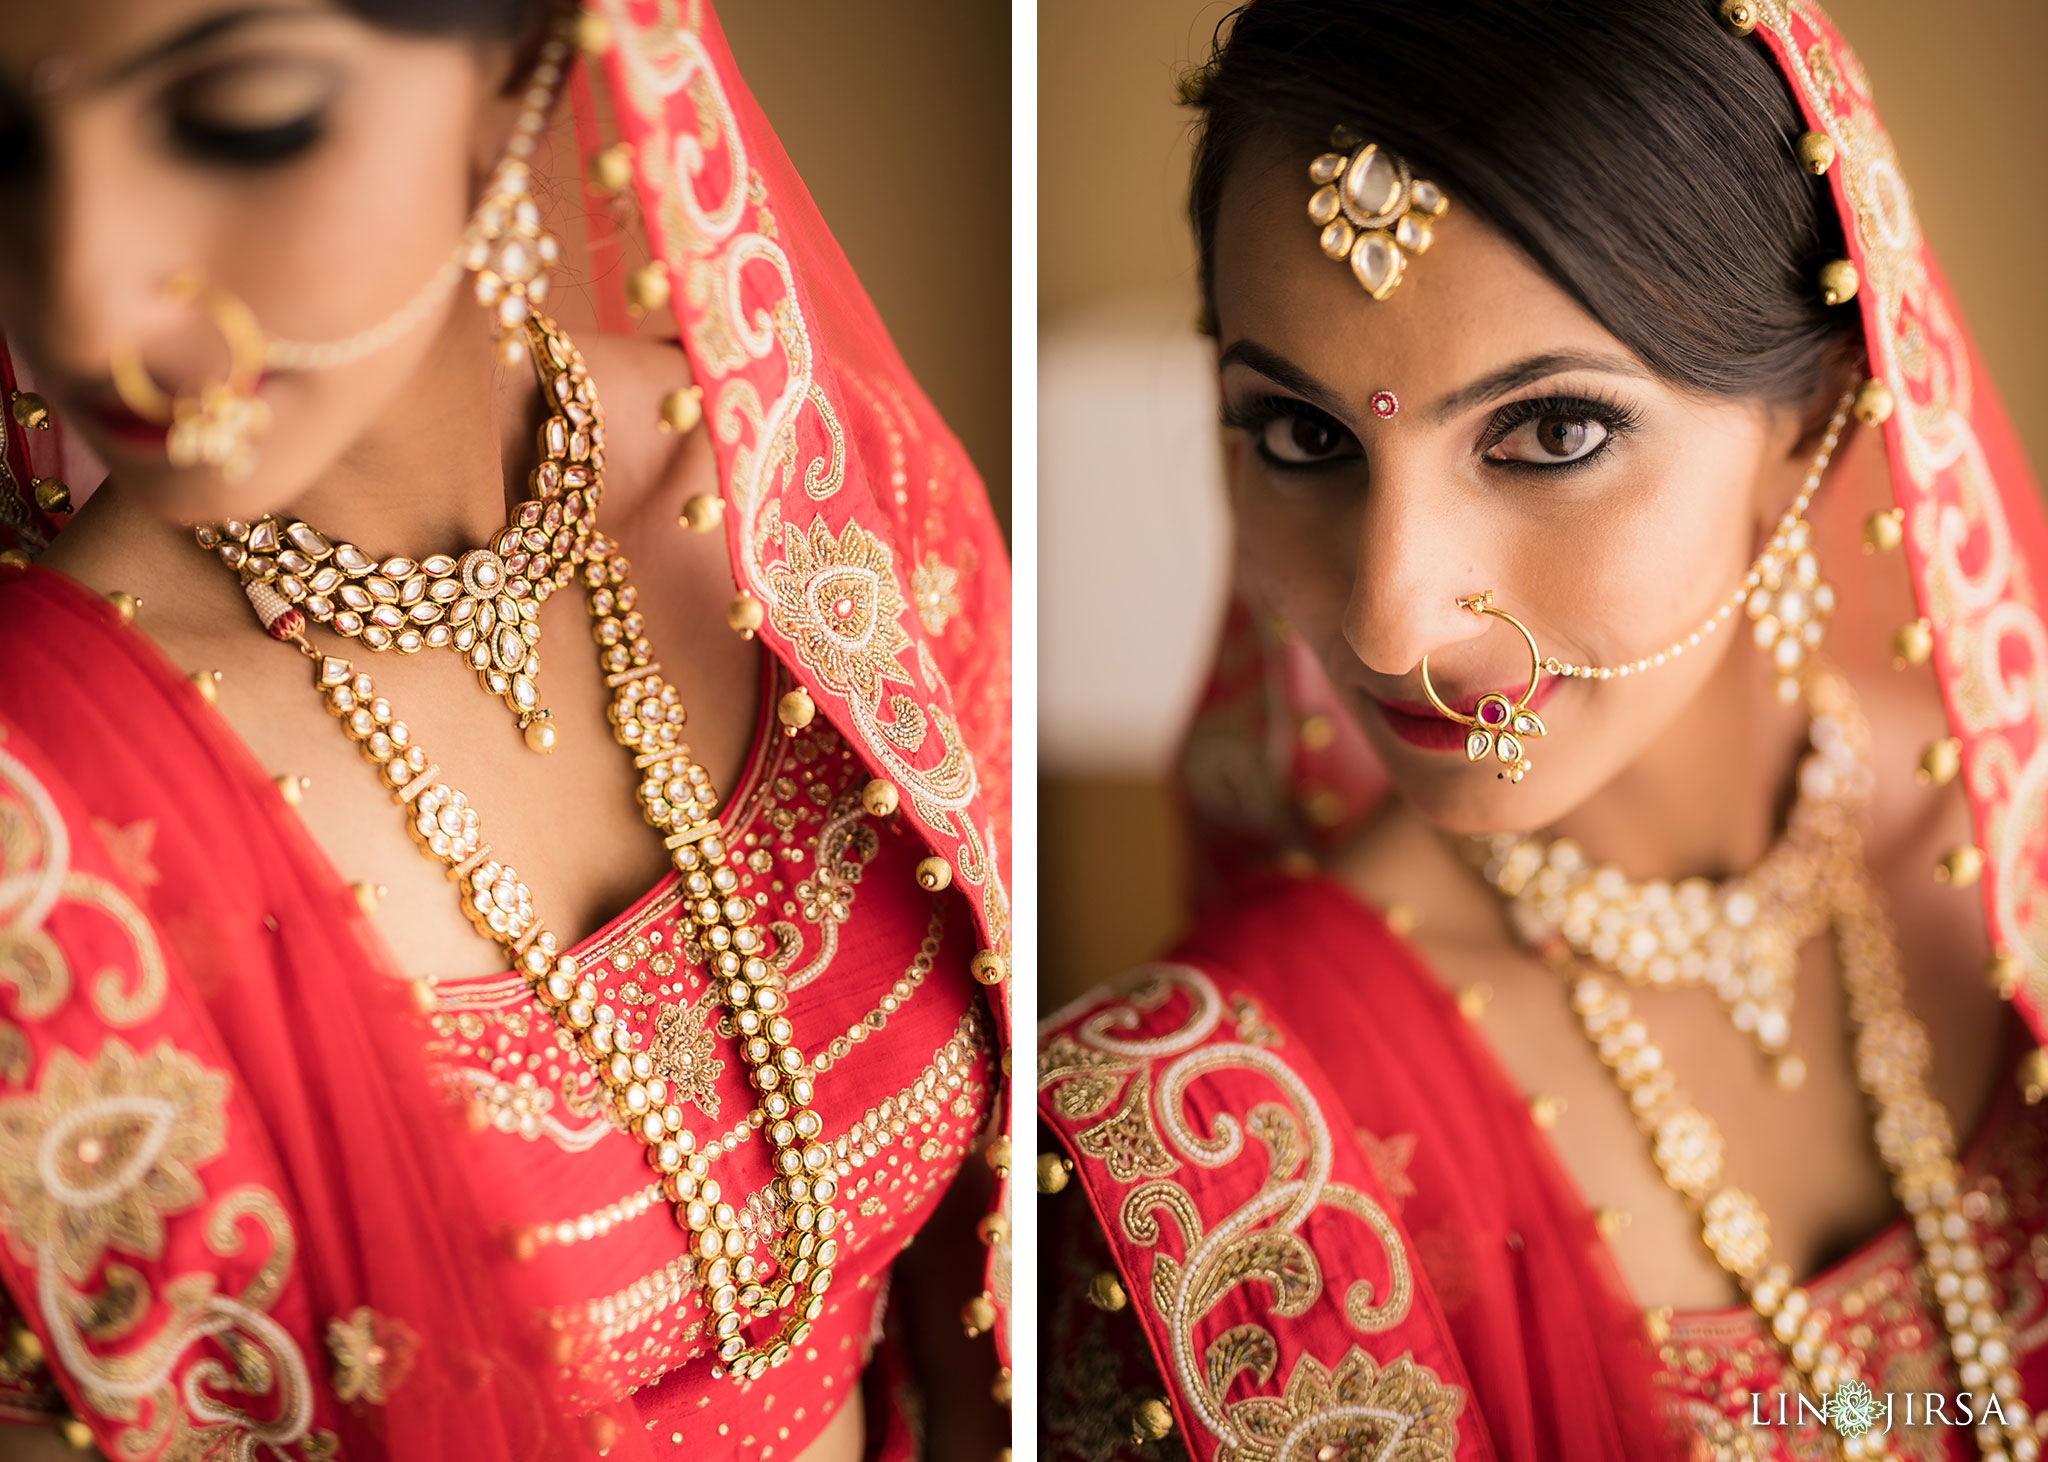 25 newport beach marriott hotel indian wedding bridesmaids photography